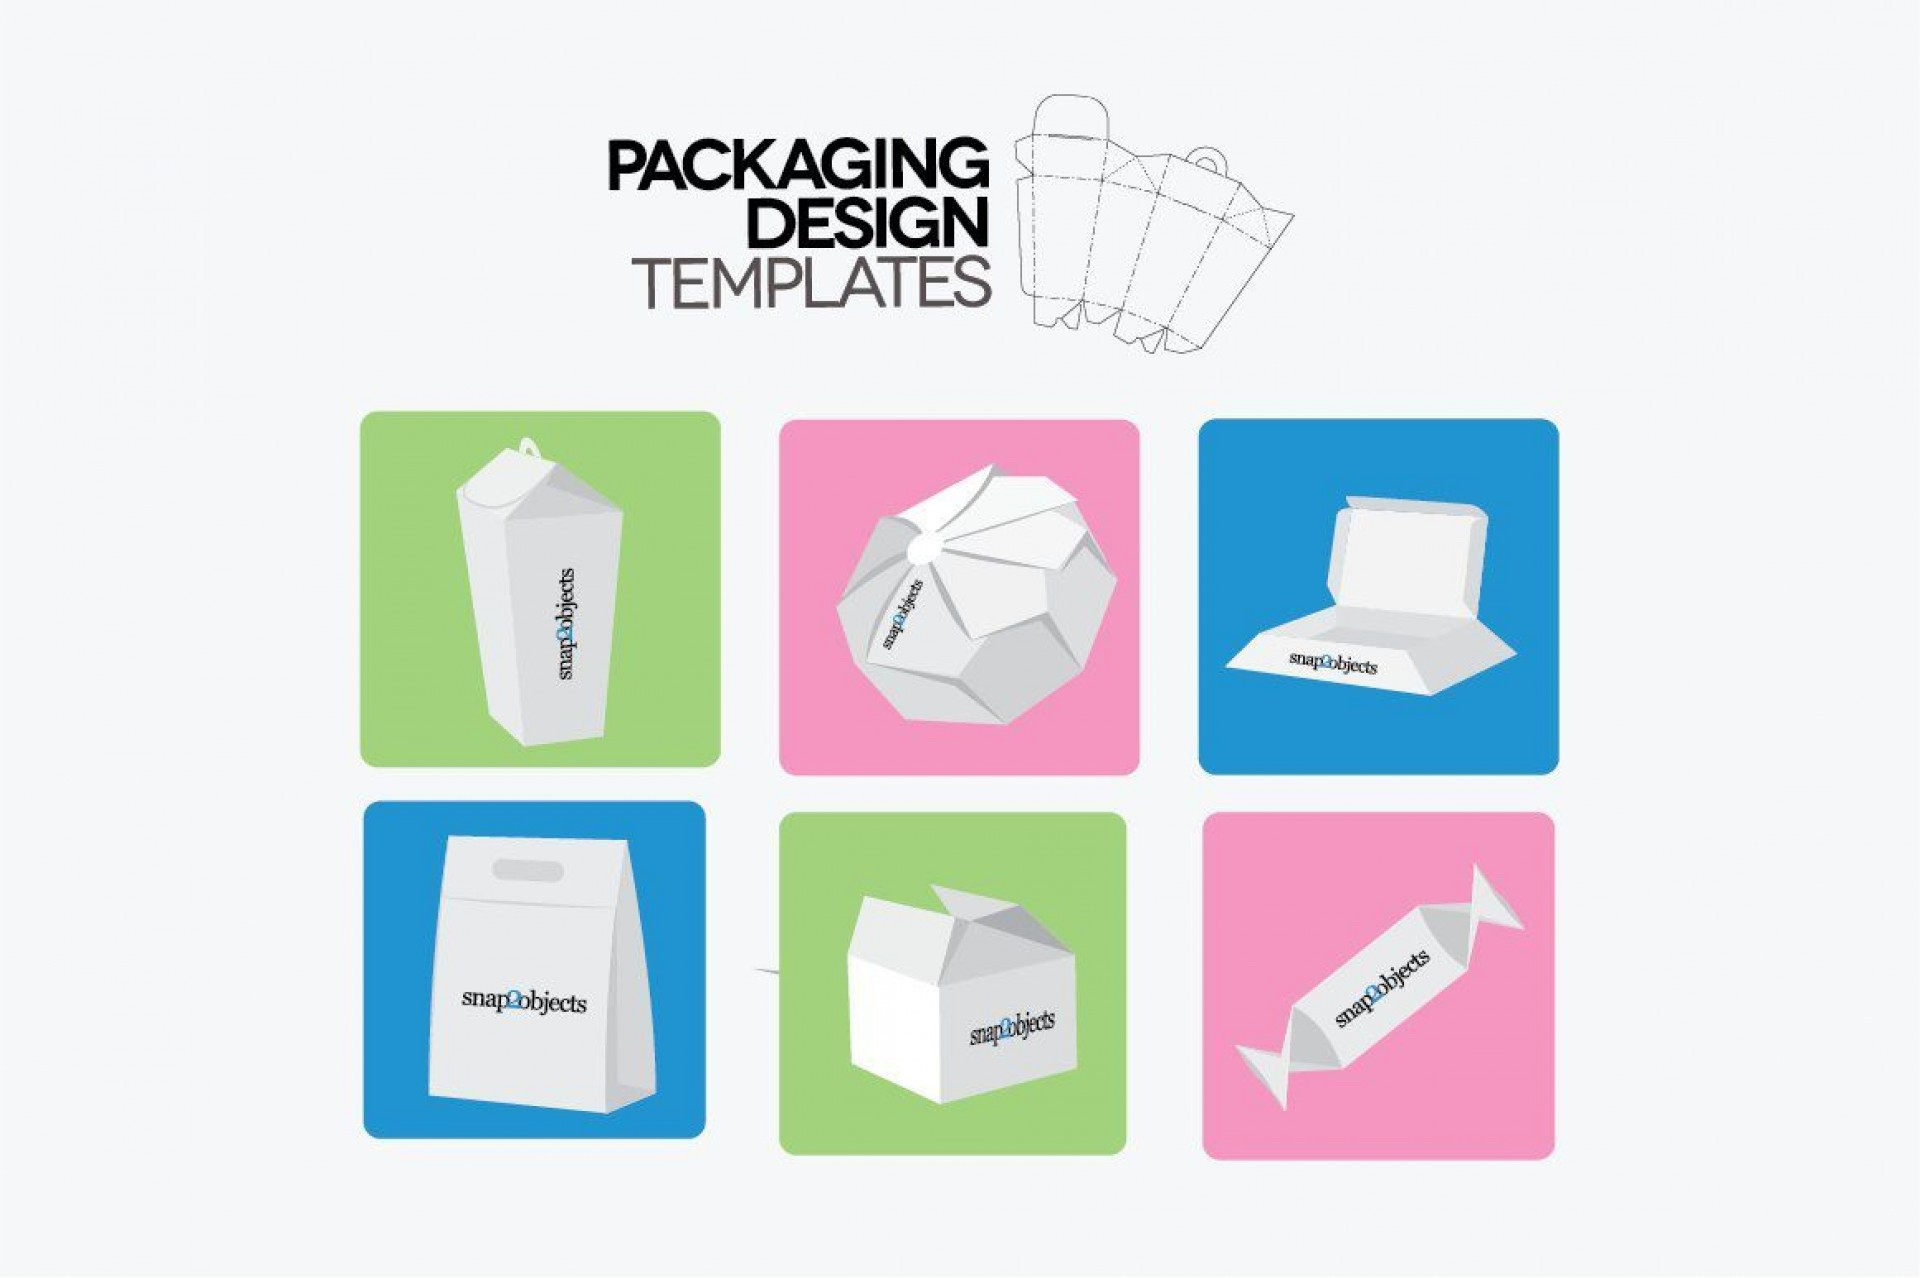 004 Astounding Product Packaging Design Template Highest Quality  Templates Free Download Sample1920